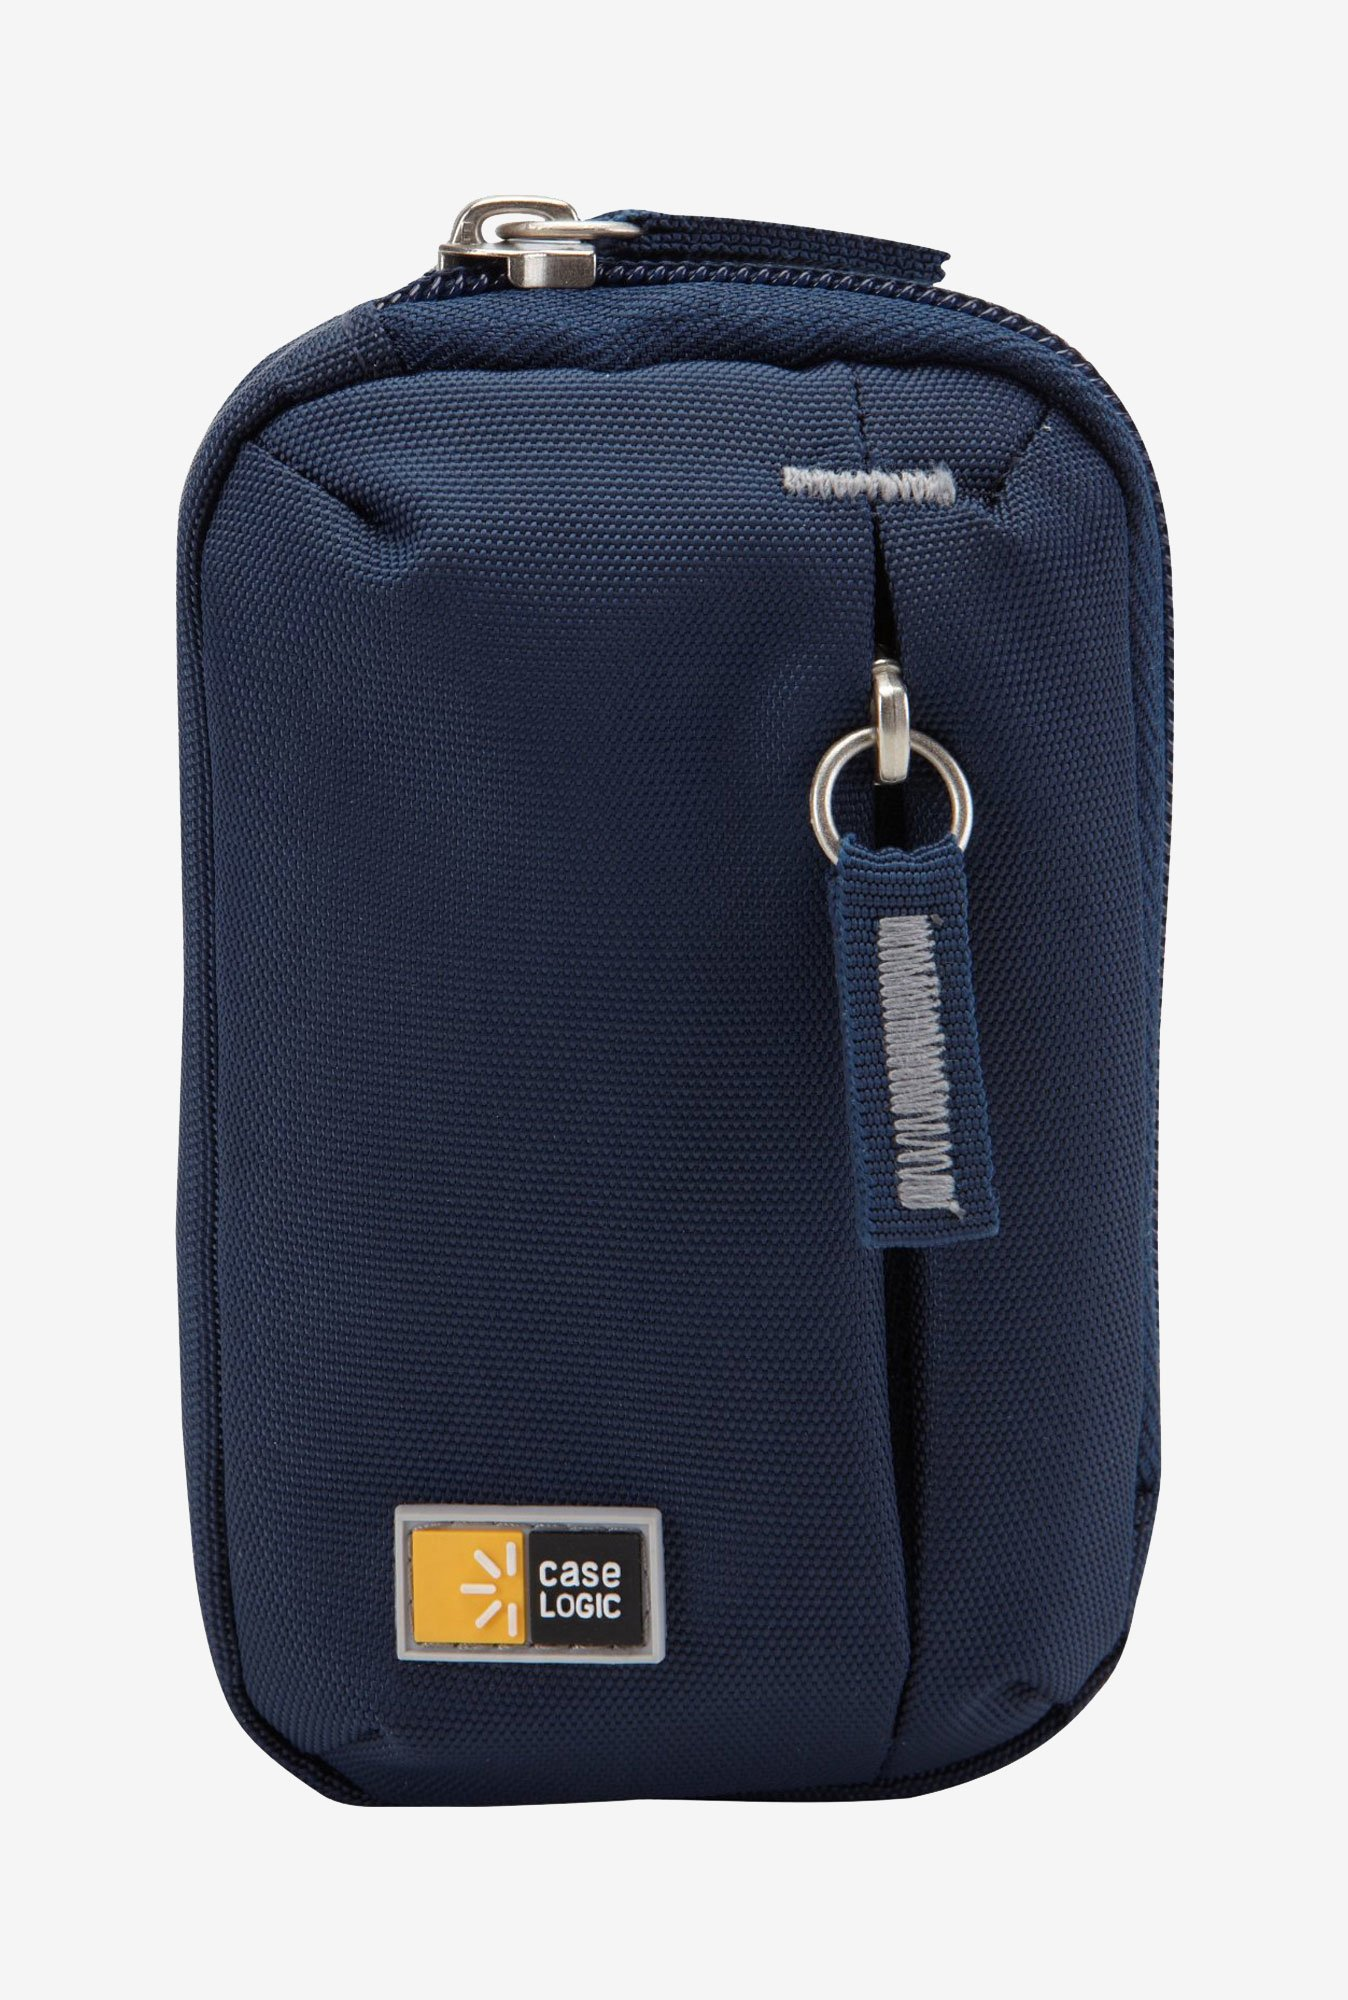 Case Logic TBC-302 Ultra Compact Camera Case (Blue)